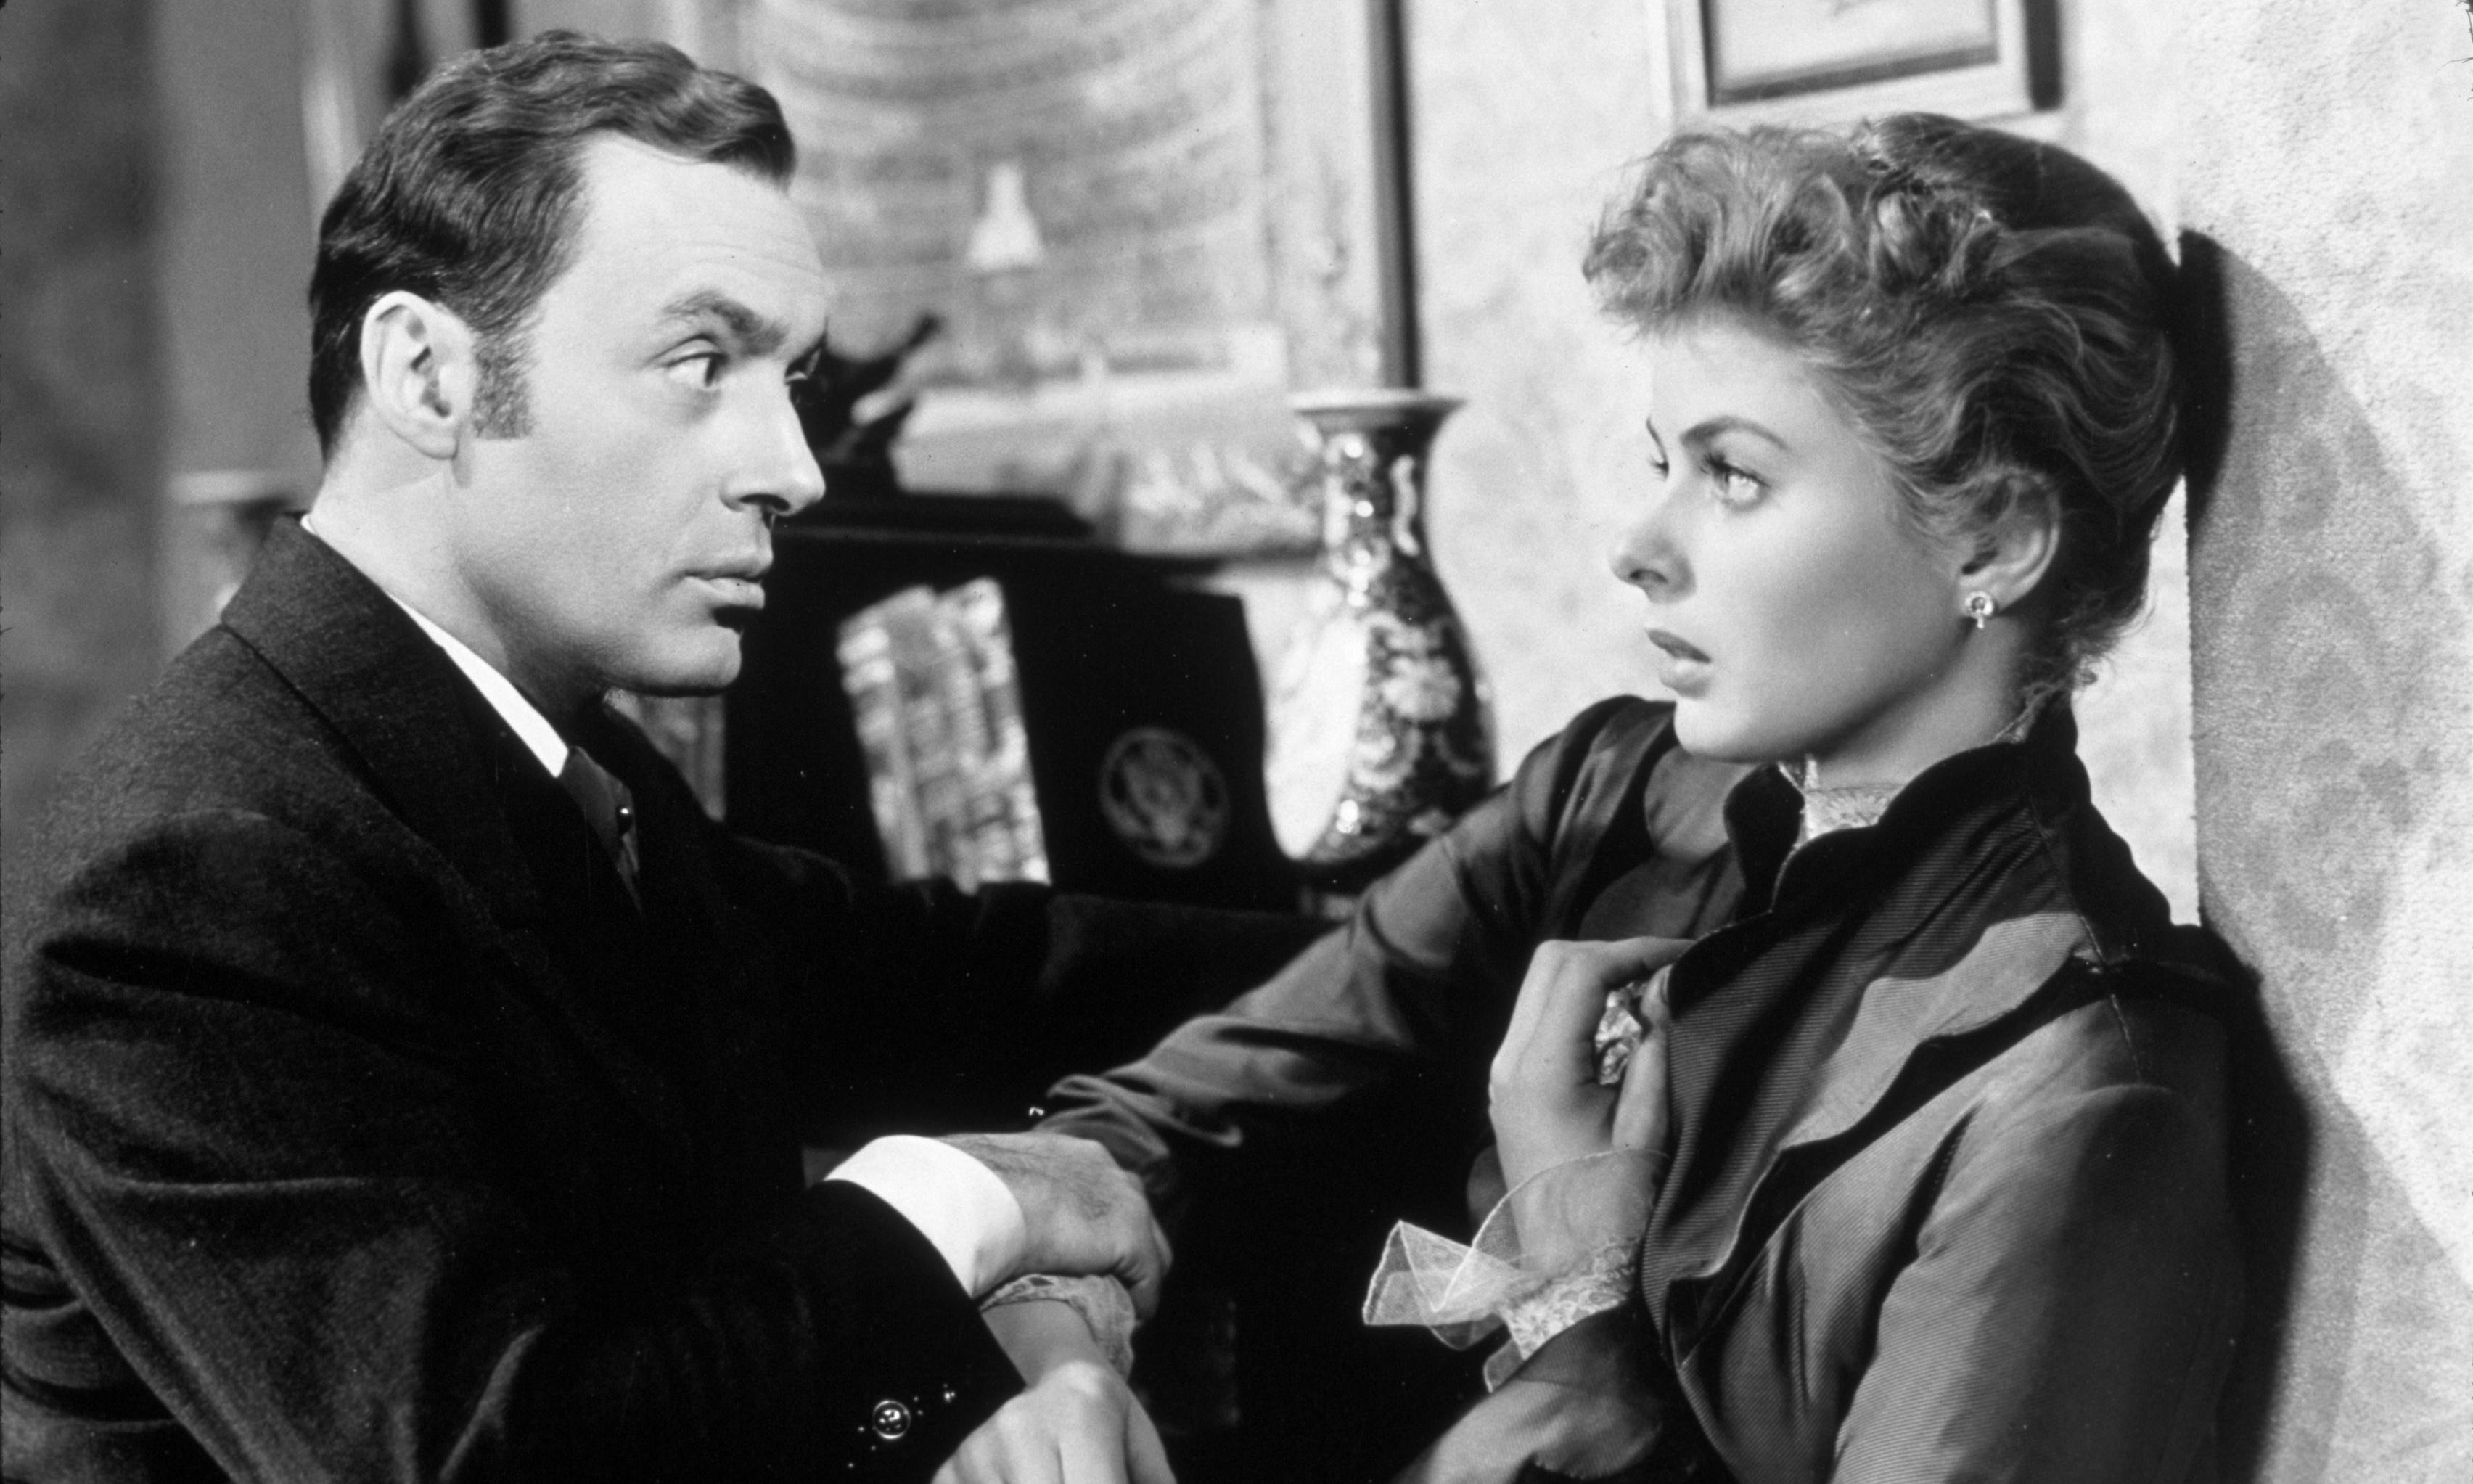 Gaslight: the return of the play that defined toxic masculinity